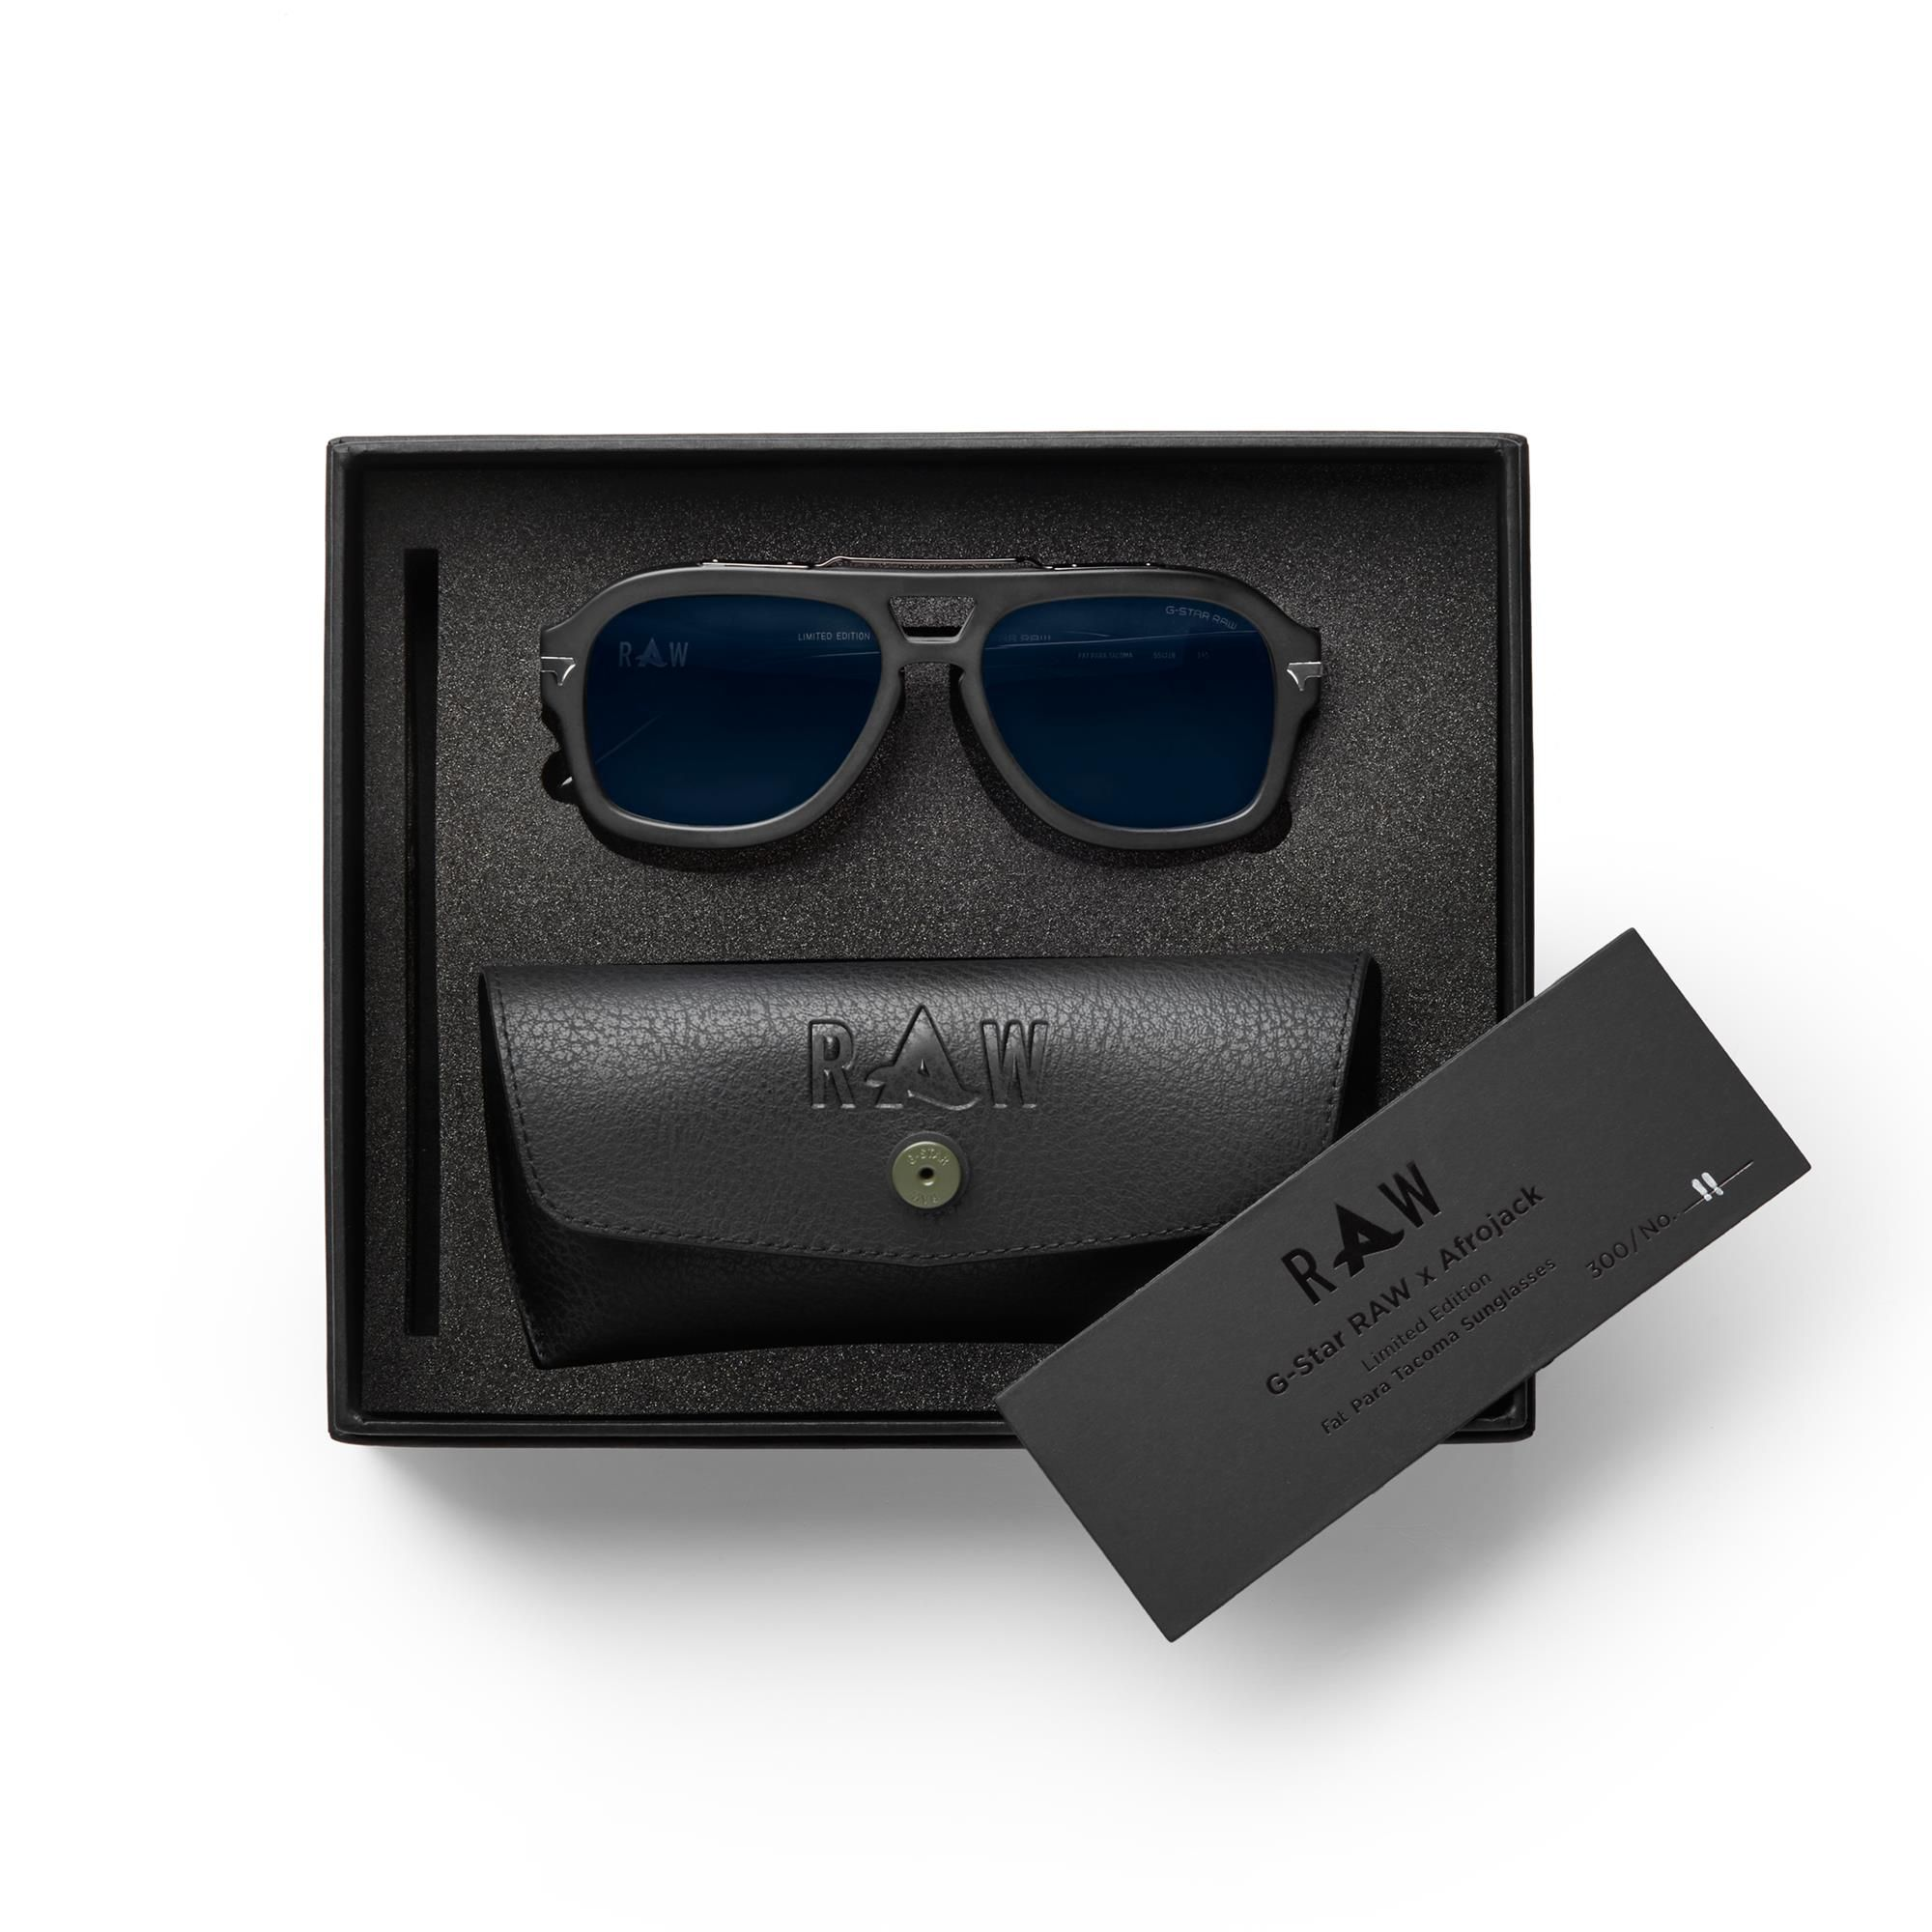 G-Star RAW - LIMITED EDITION: AFROJACK SUNGLASSES